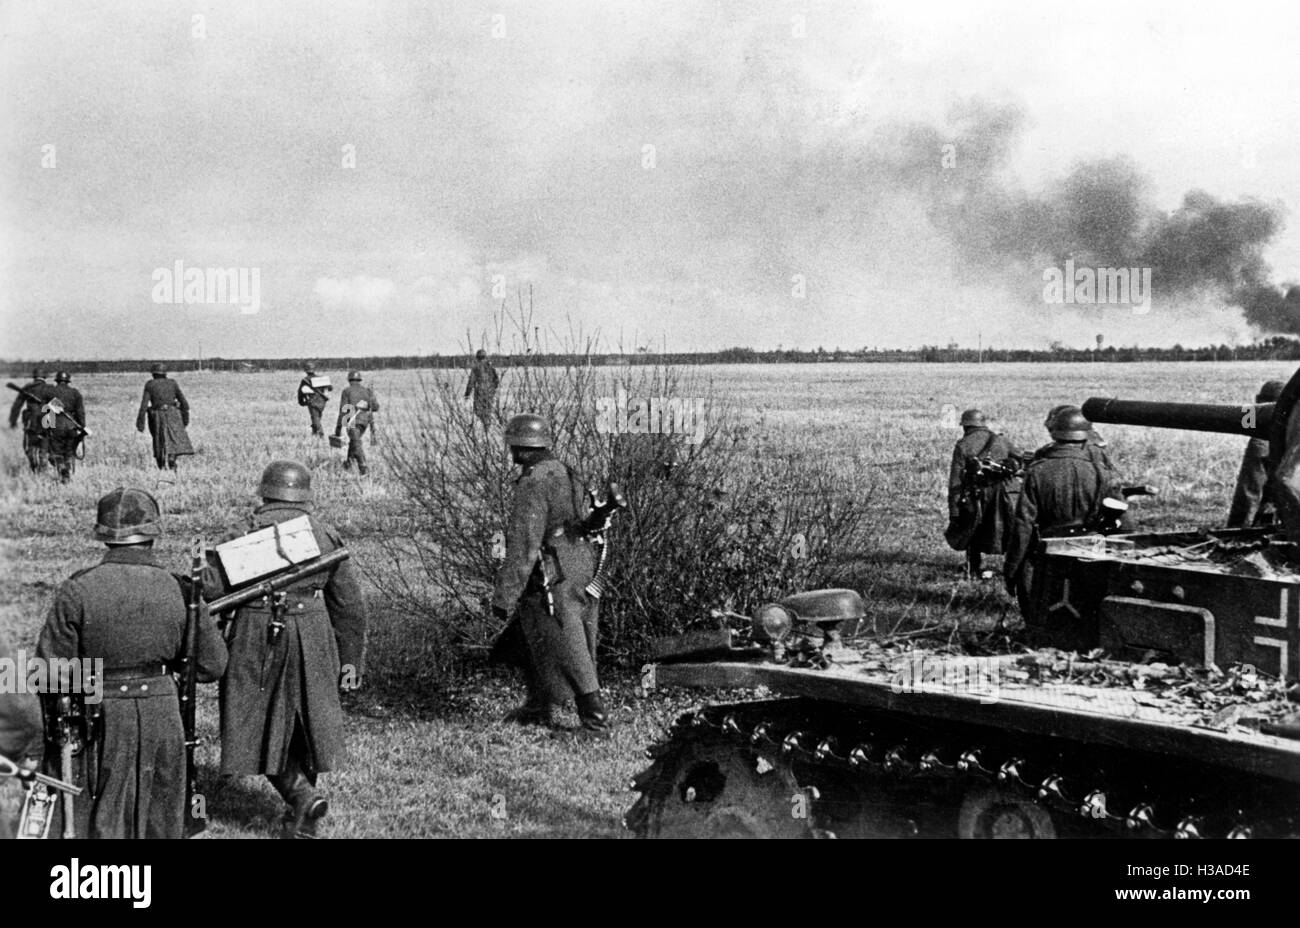 German infantry and tanks during the attack on Kalinin, 1941 - Stock Image